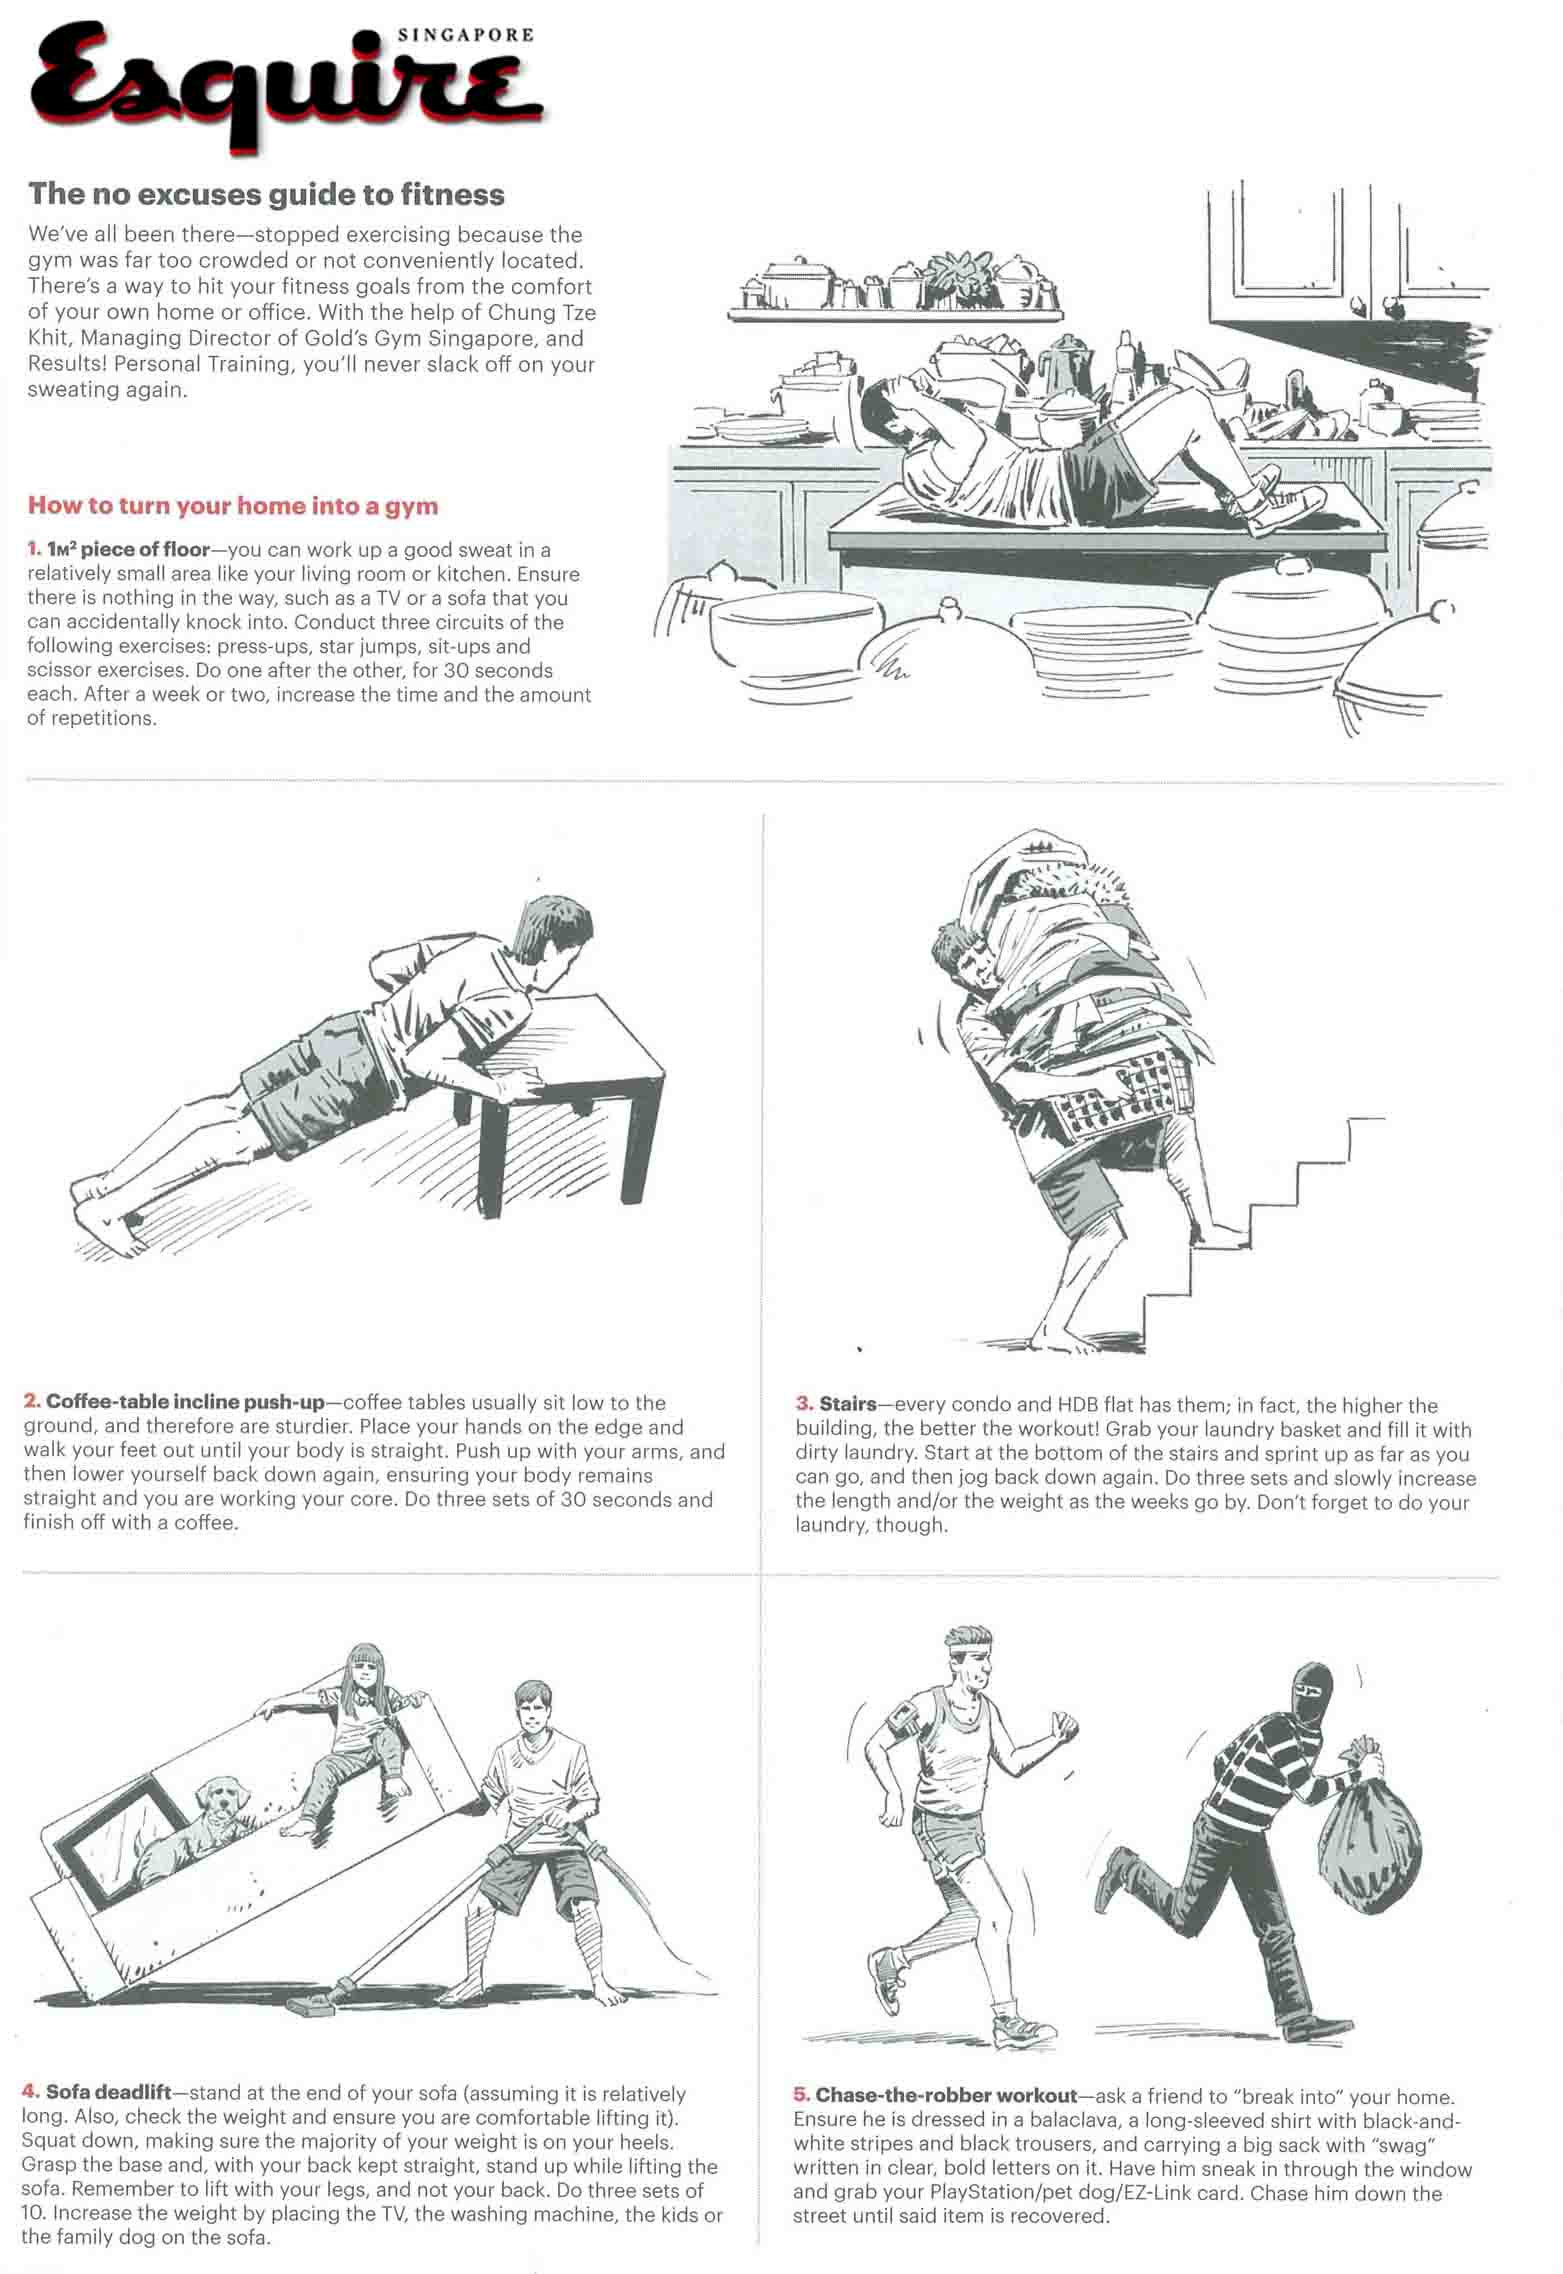 esquire1 personal training.jpg